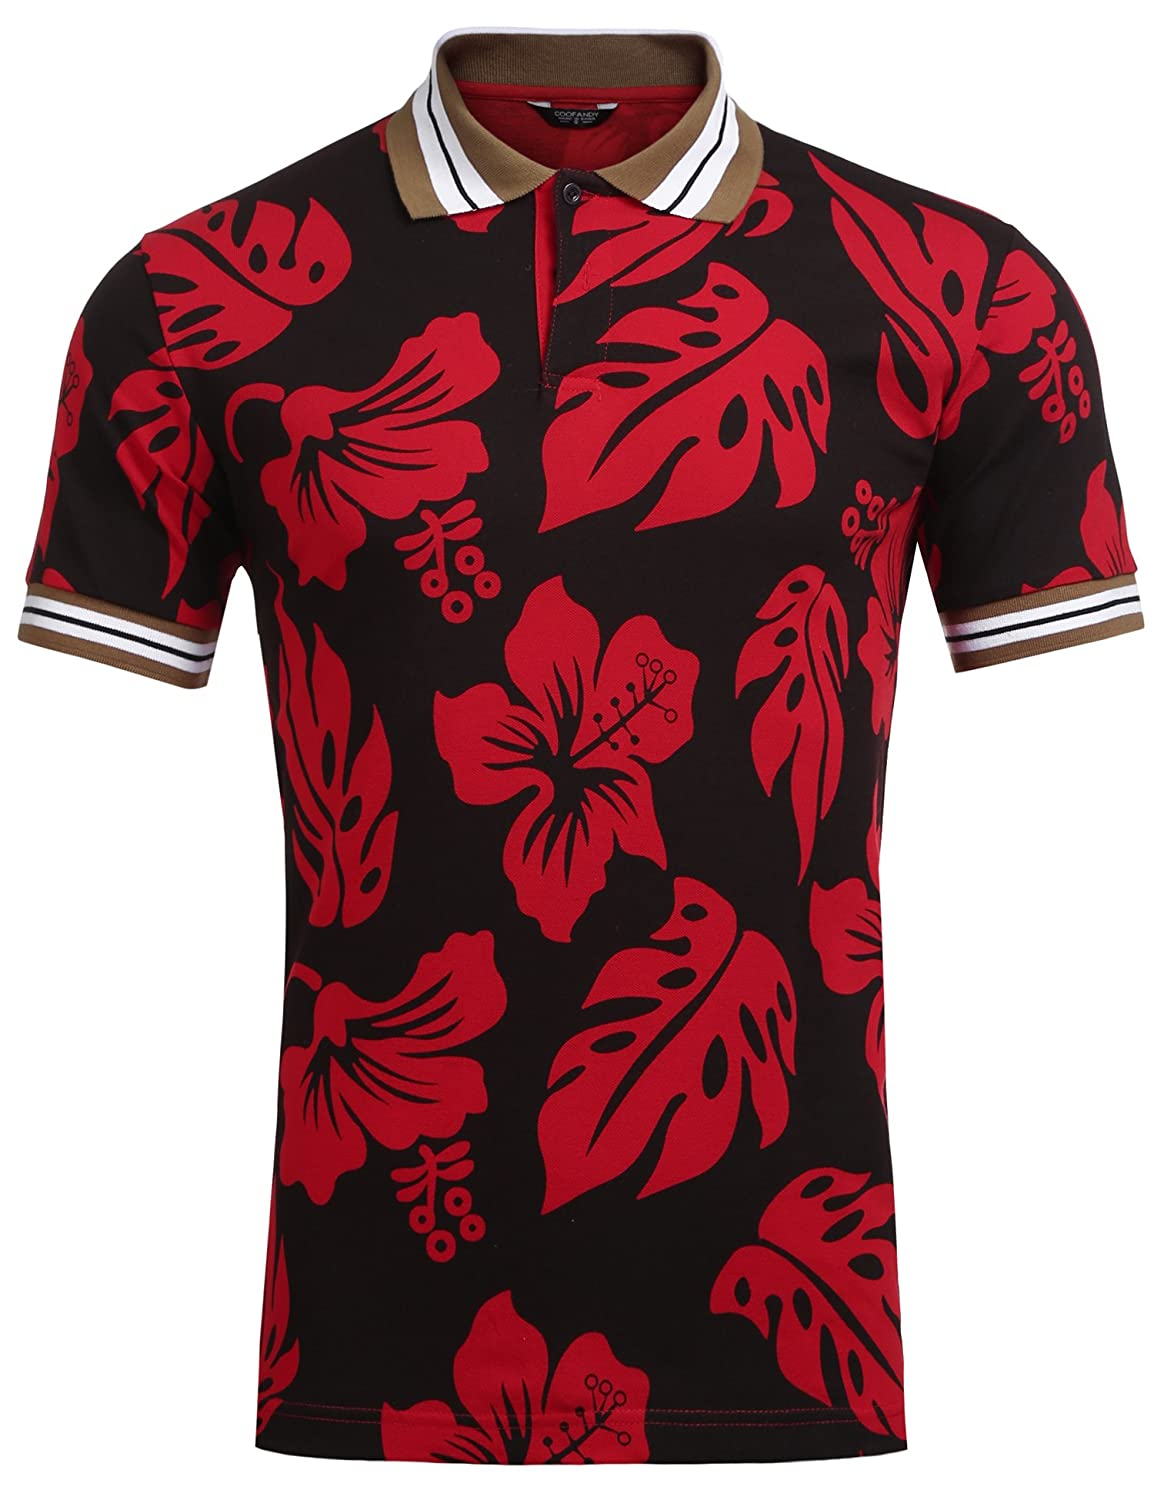 Coofandy Mens Collared Short Sleeves Floral Slim Fit Shirt ATY-1-01